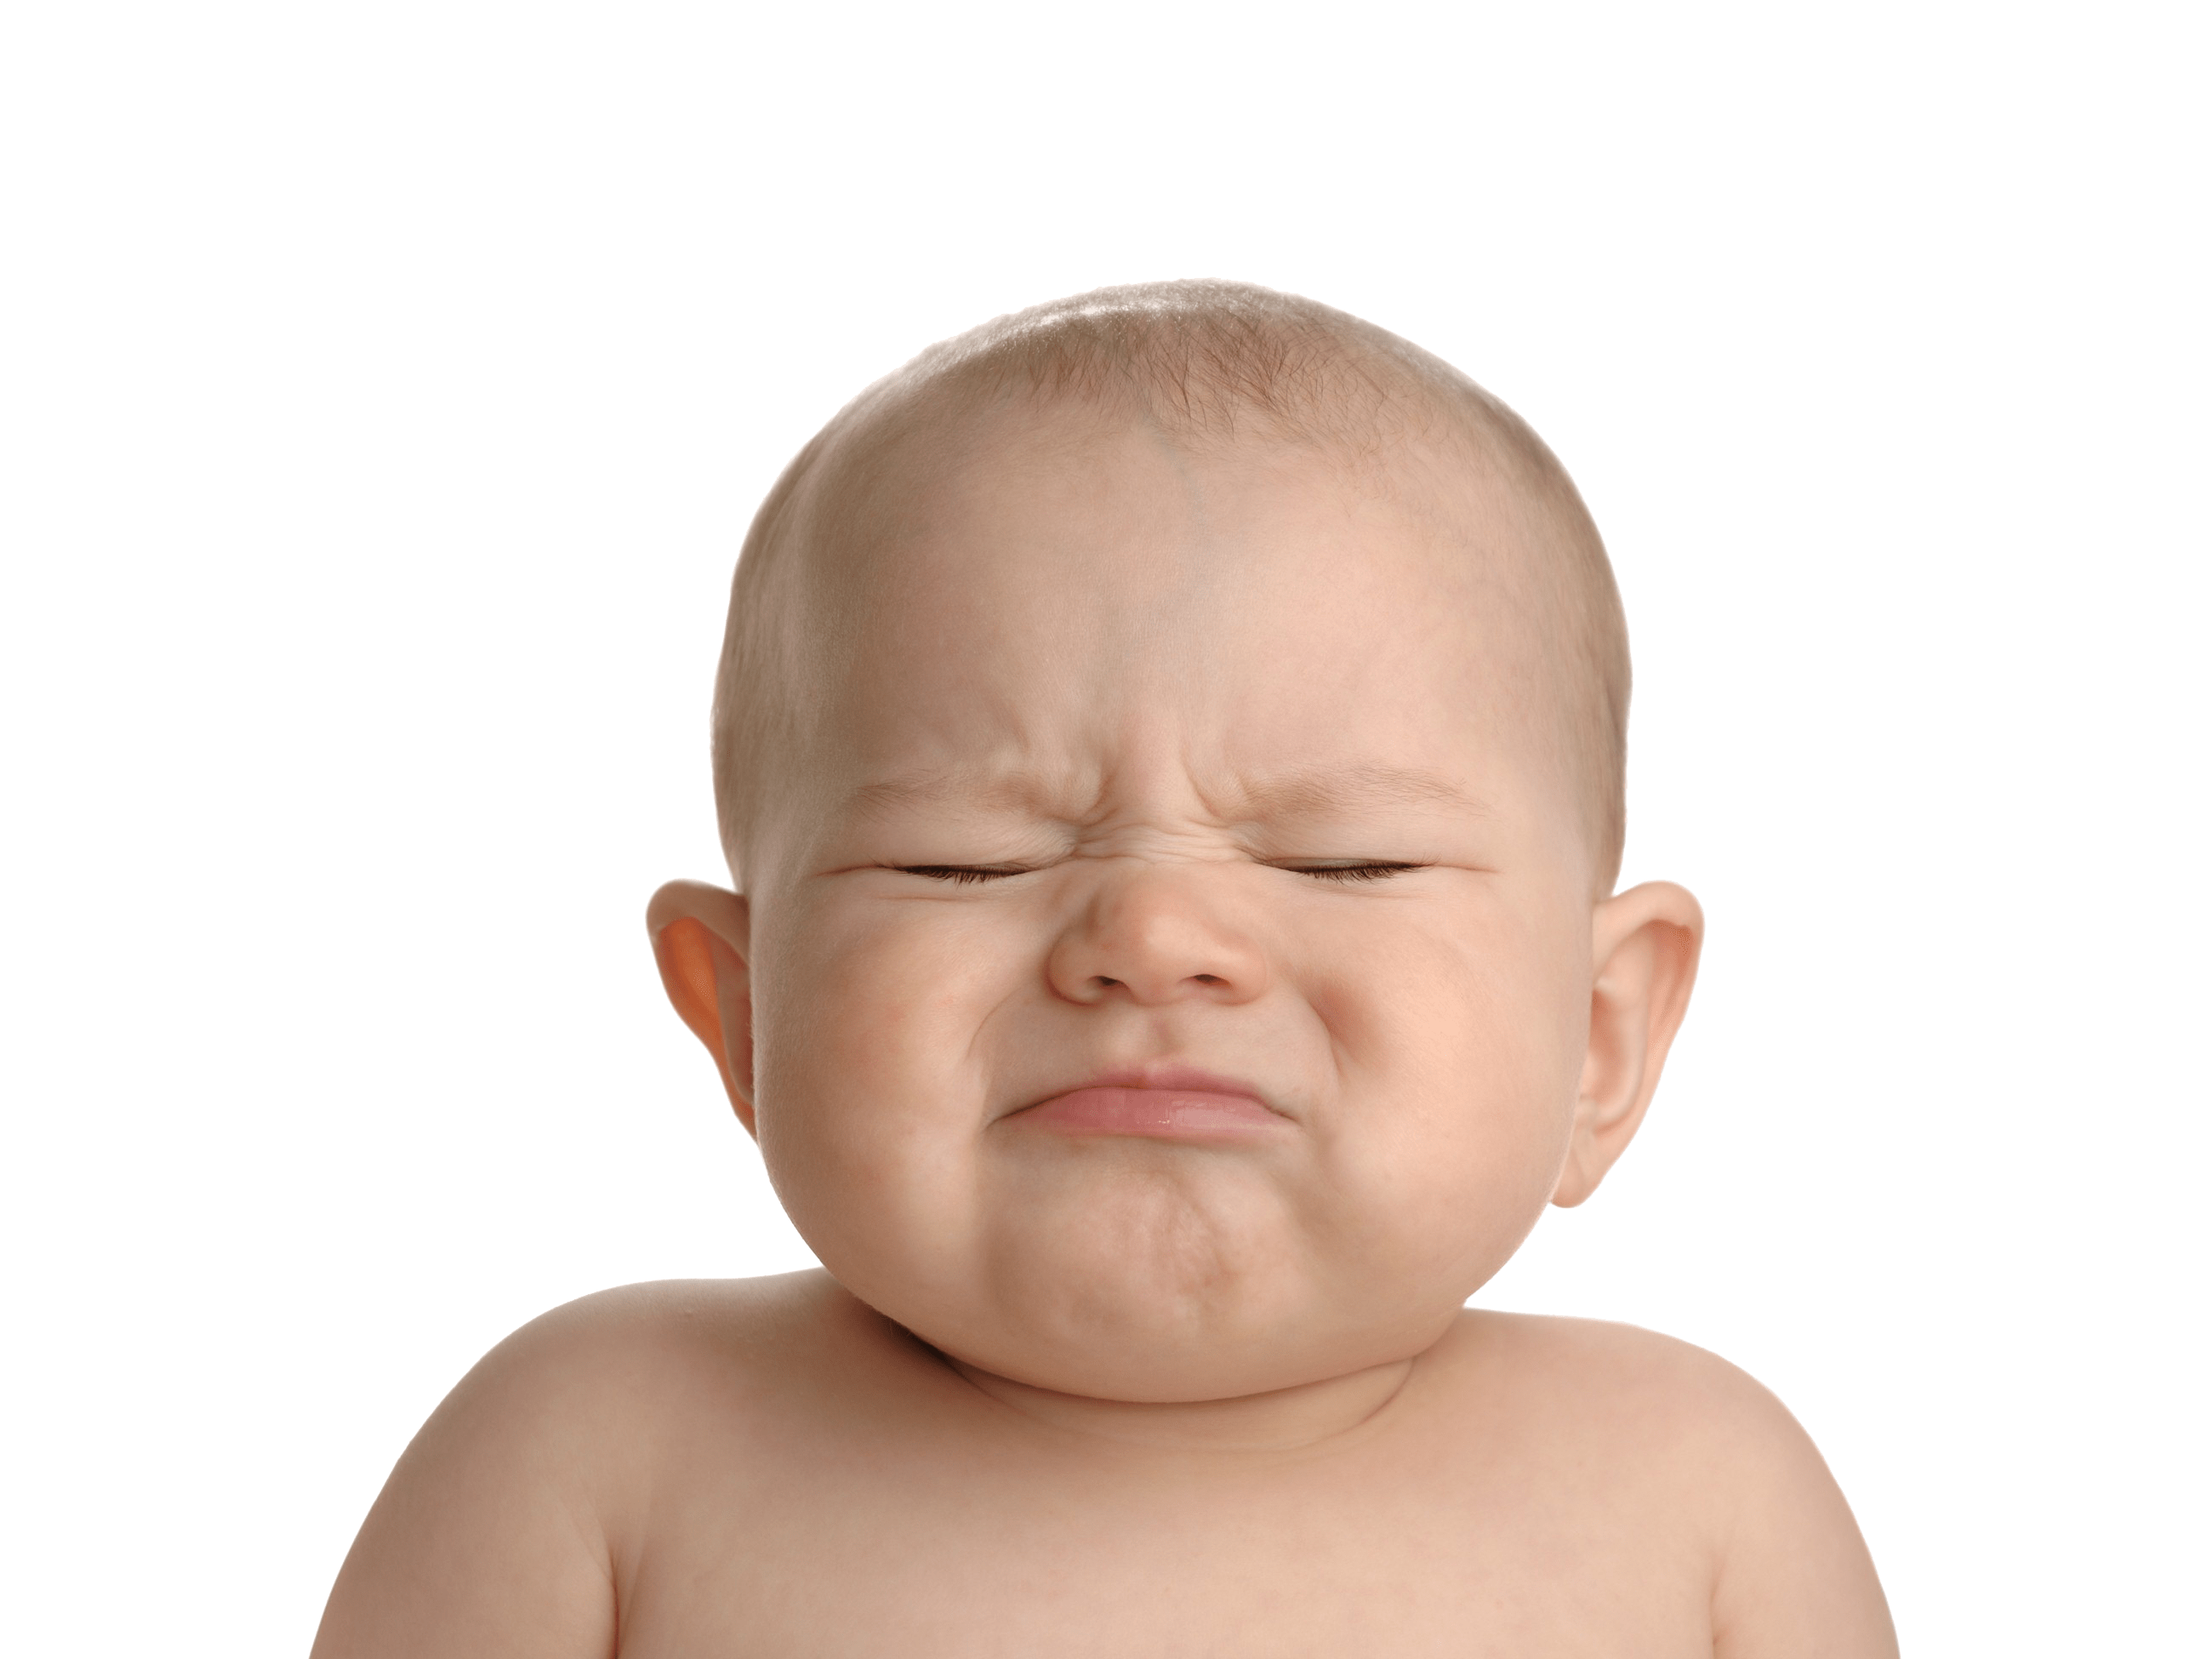 Baby Crying PNG Image With Transparent Background.